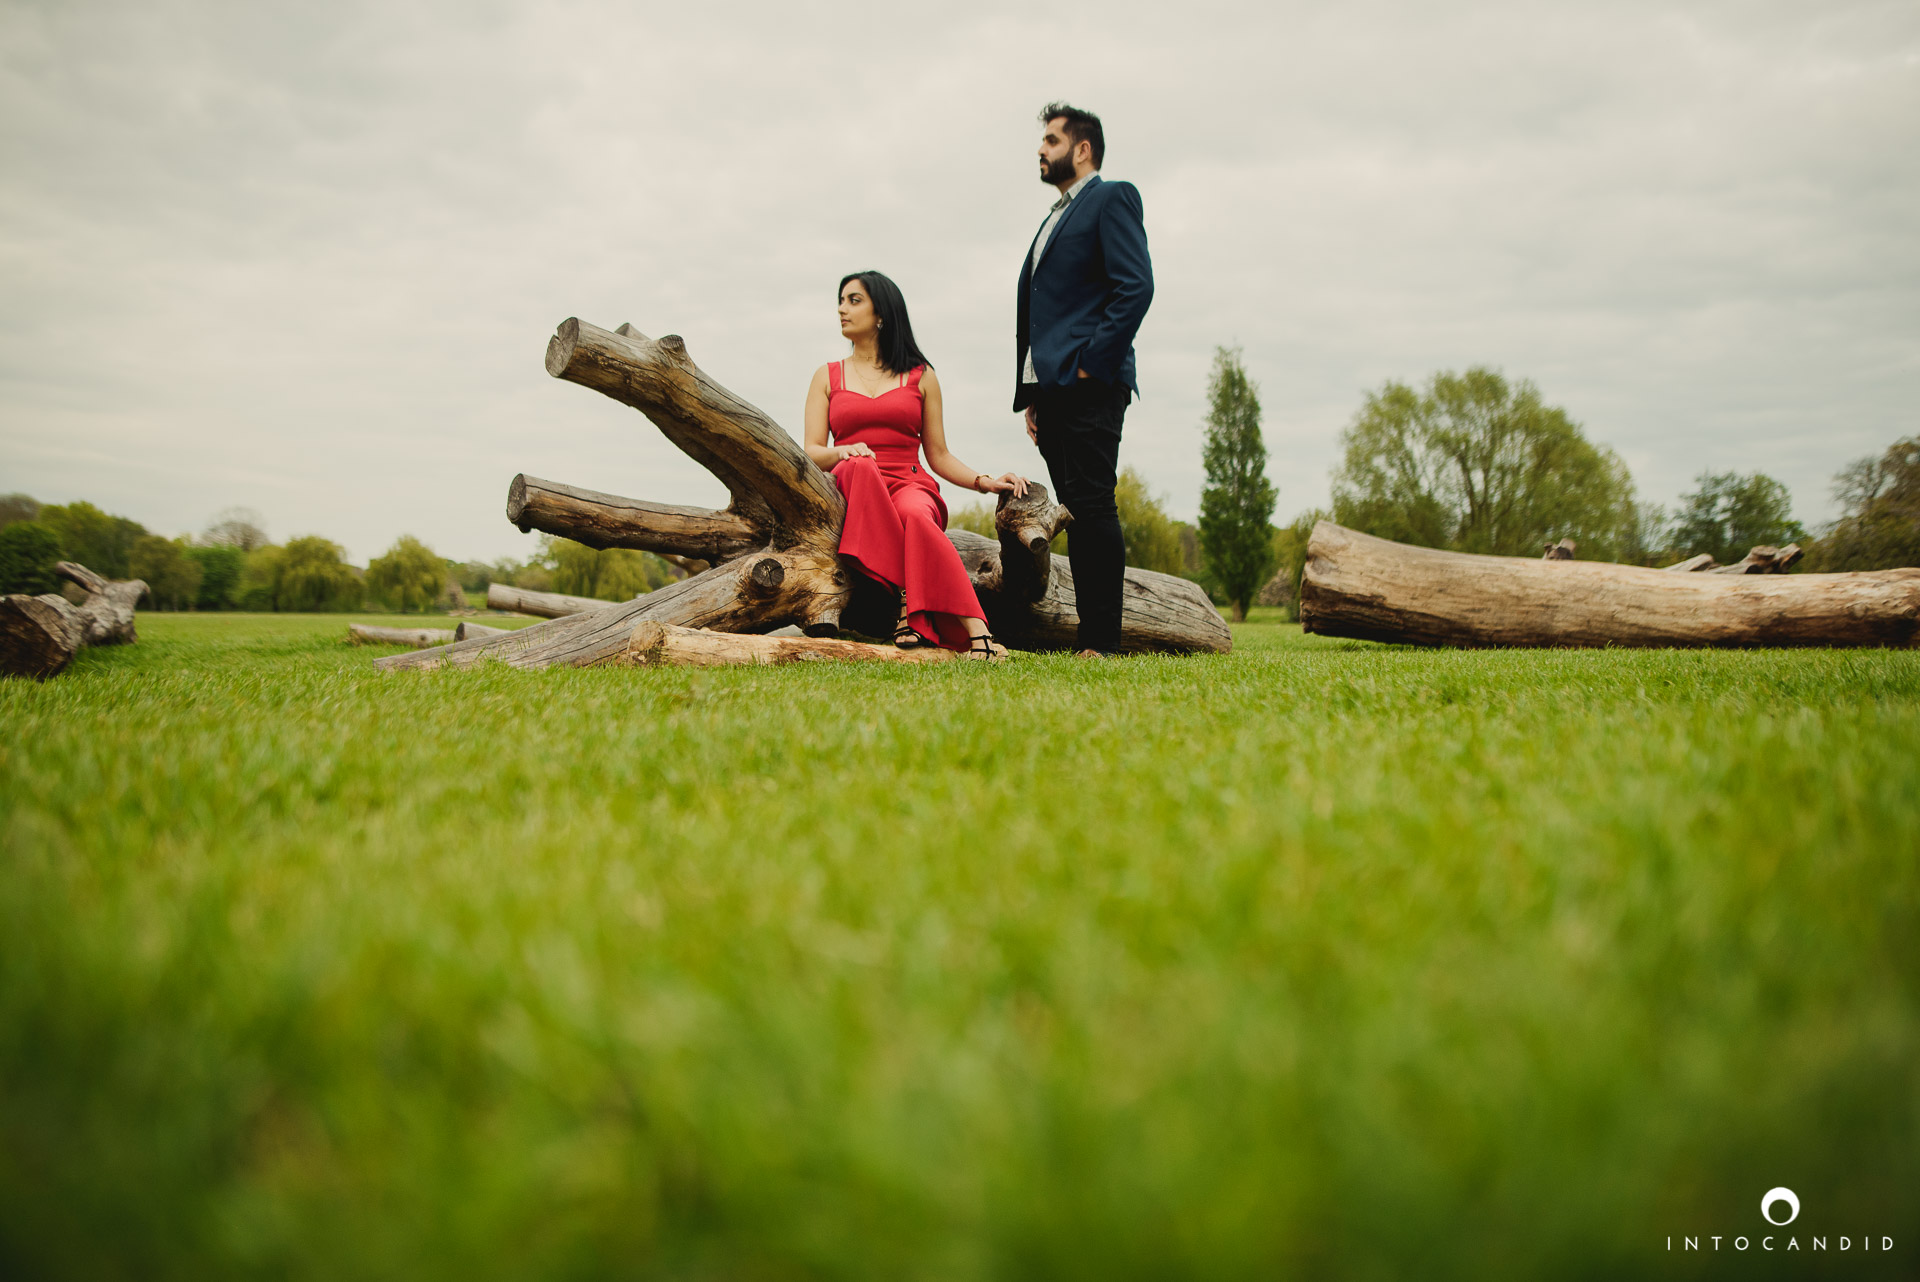 London_prewedding_Photographer_Intocandid_Photography_Ketan & Manasvi_12.JPG